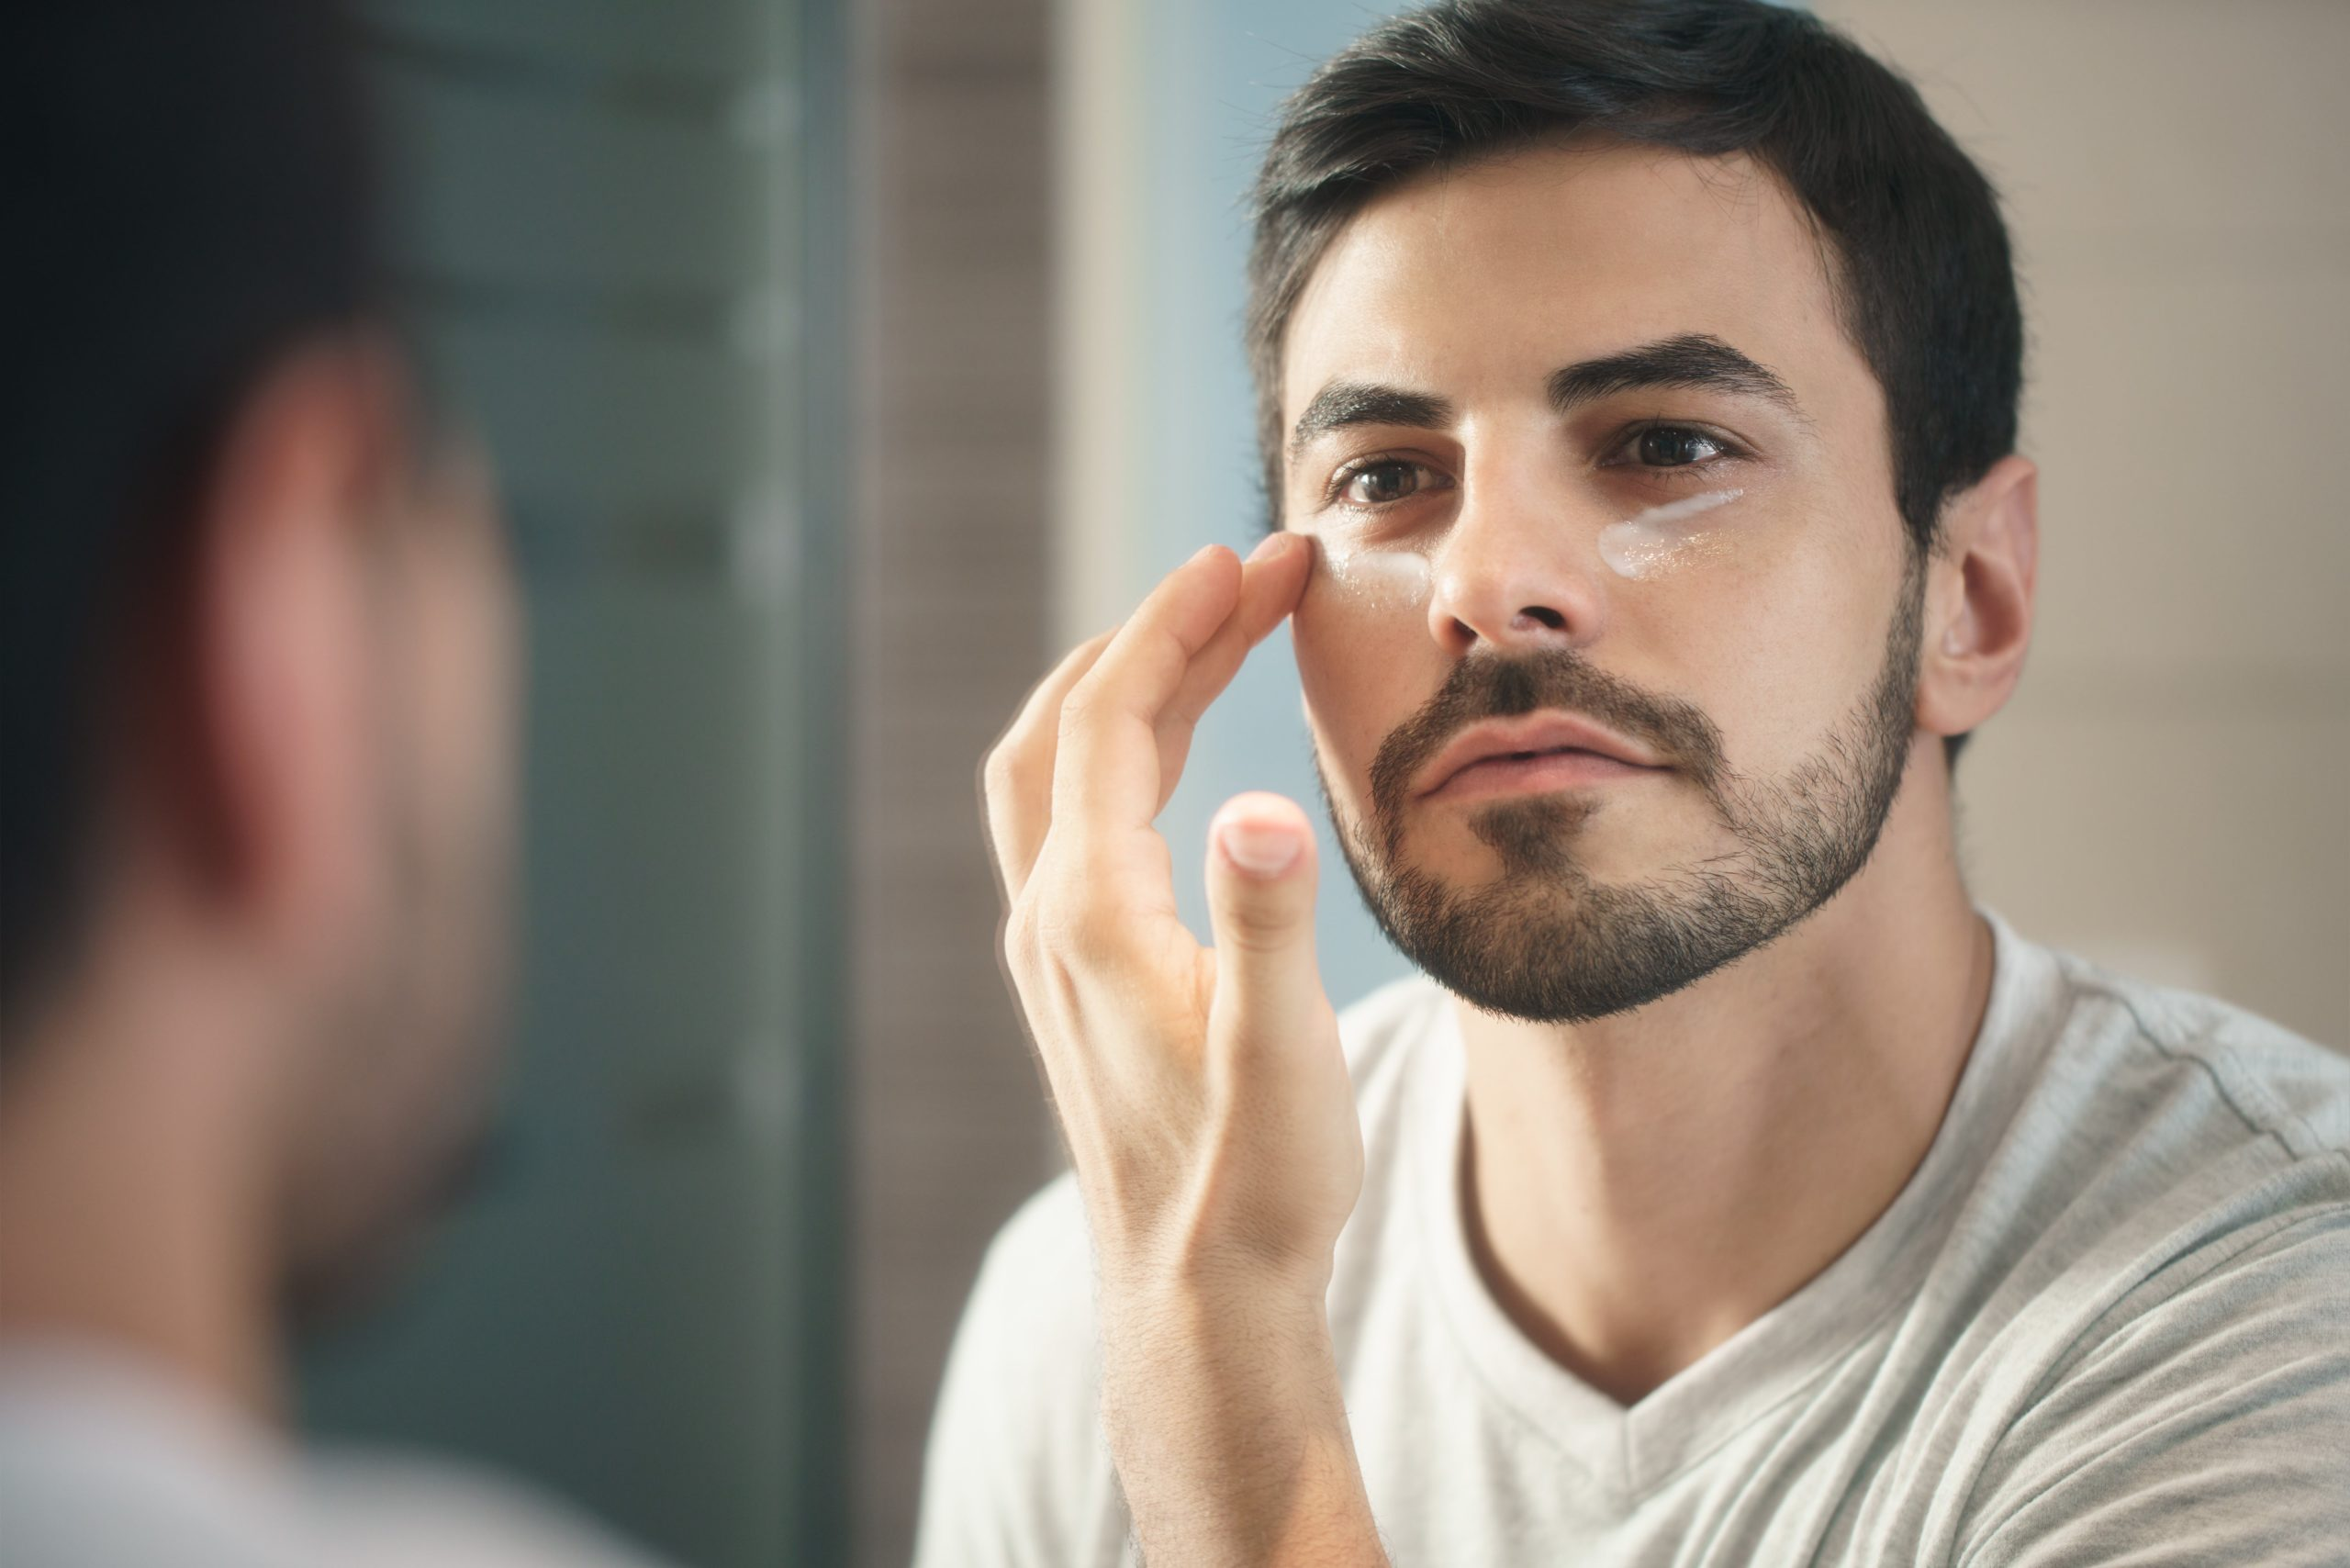 Your Experience With Laser Skin Resurfacing